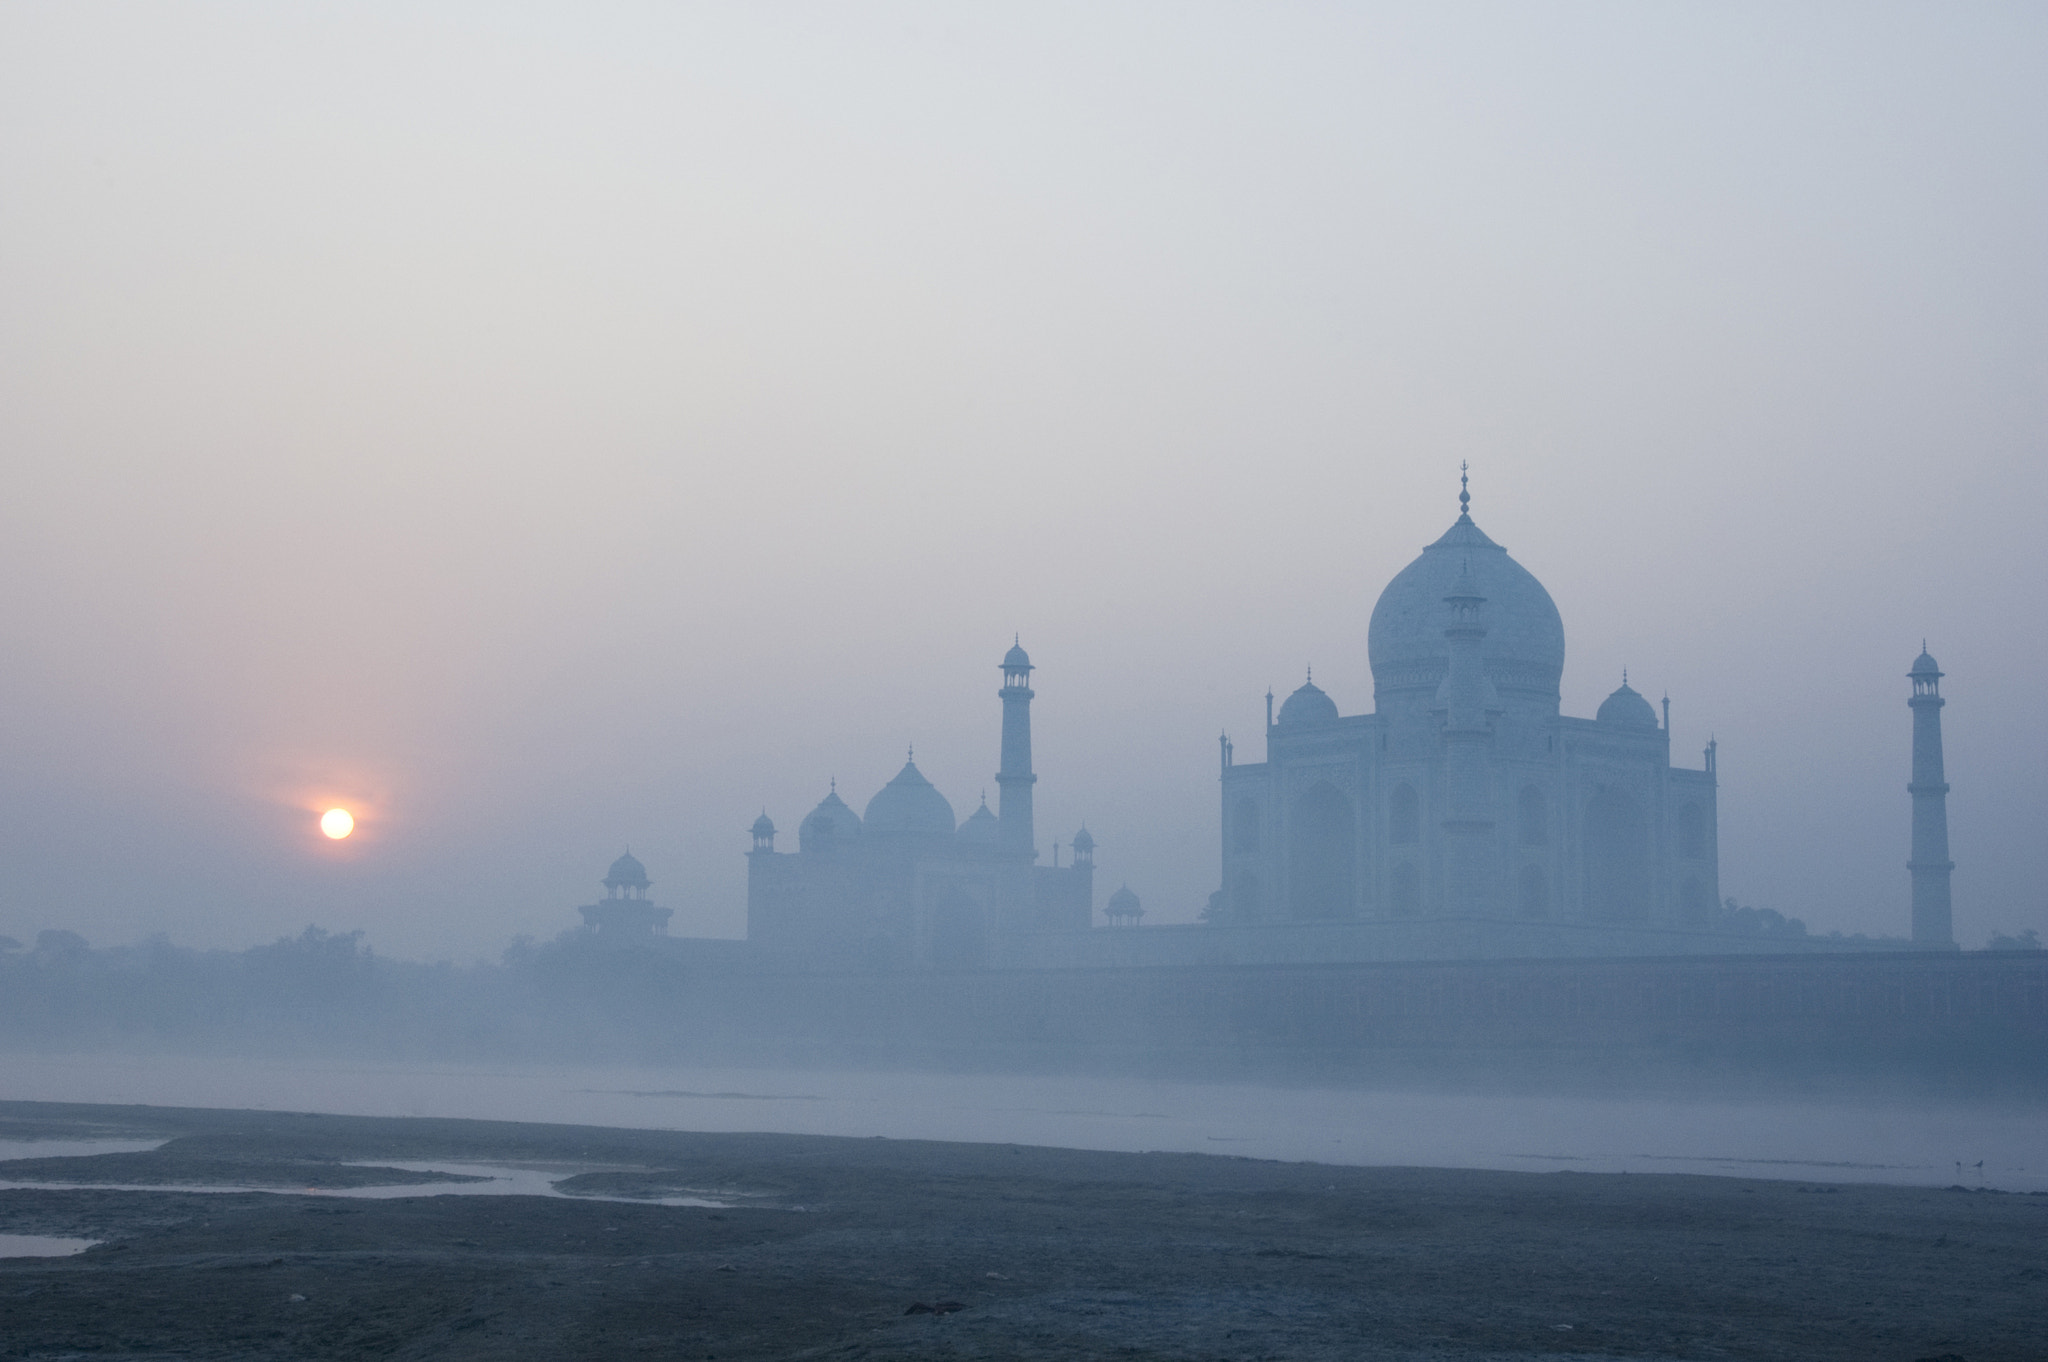 Photograph Taj Mahal, Agra, India by Jitendra Singh - Indian Travel Photographer on 500px